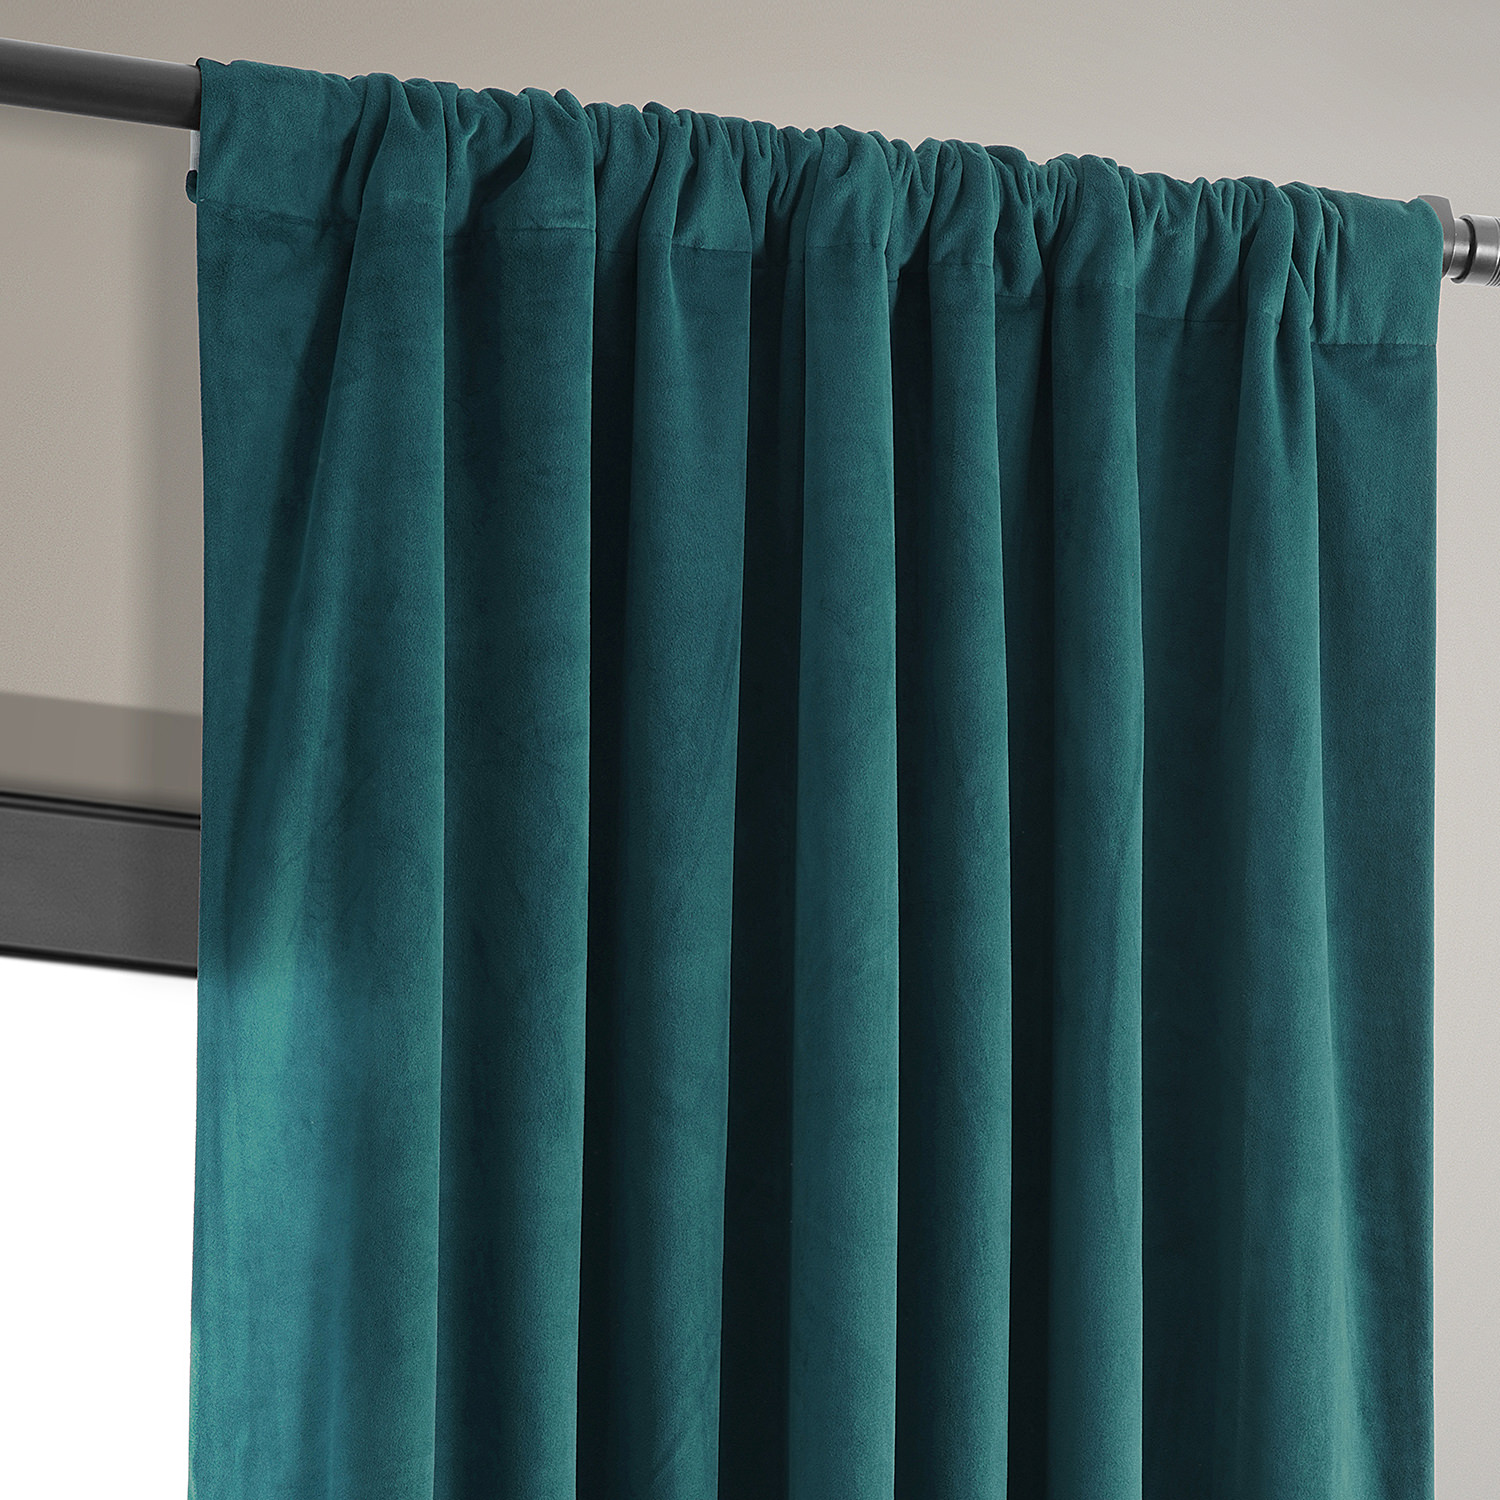 Buy Signature Everglade Teal Blackout Velvet Curtains